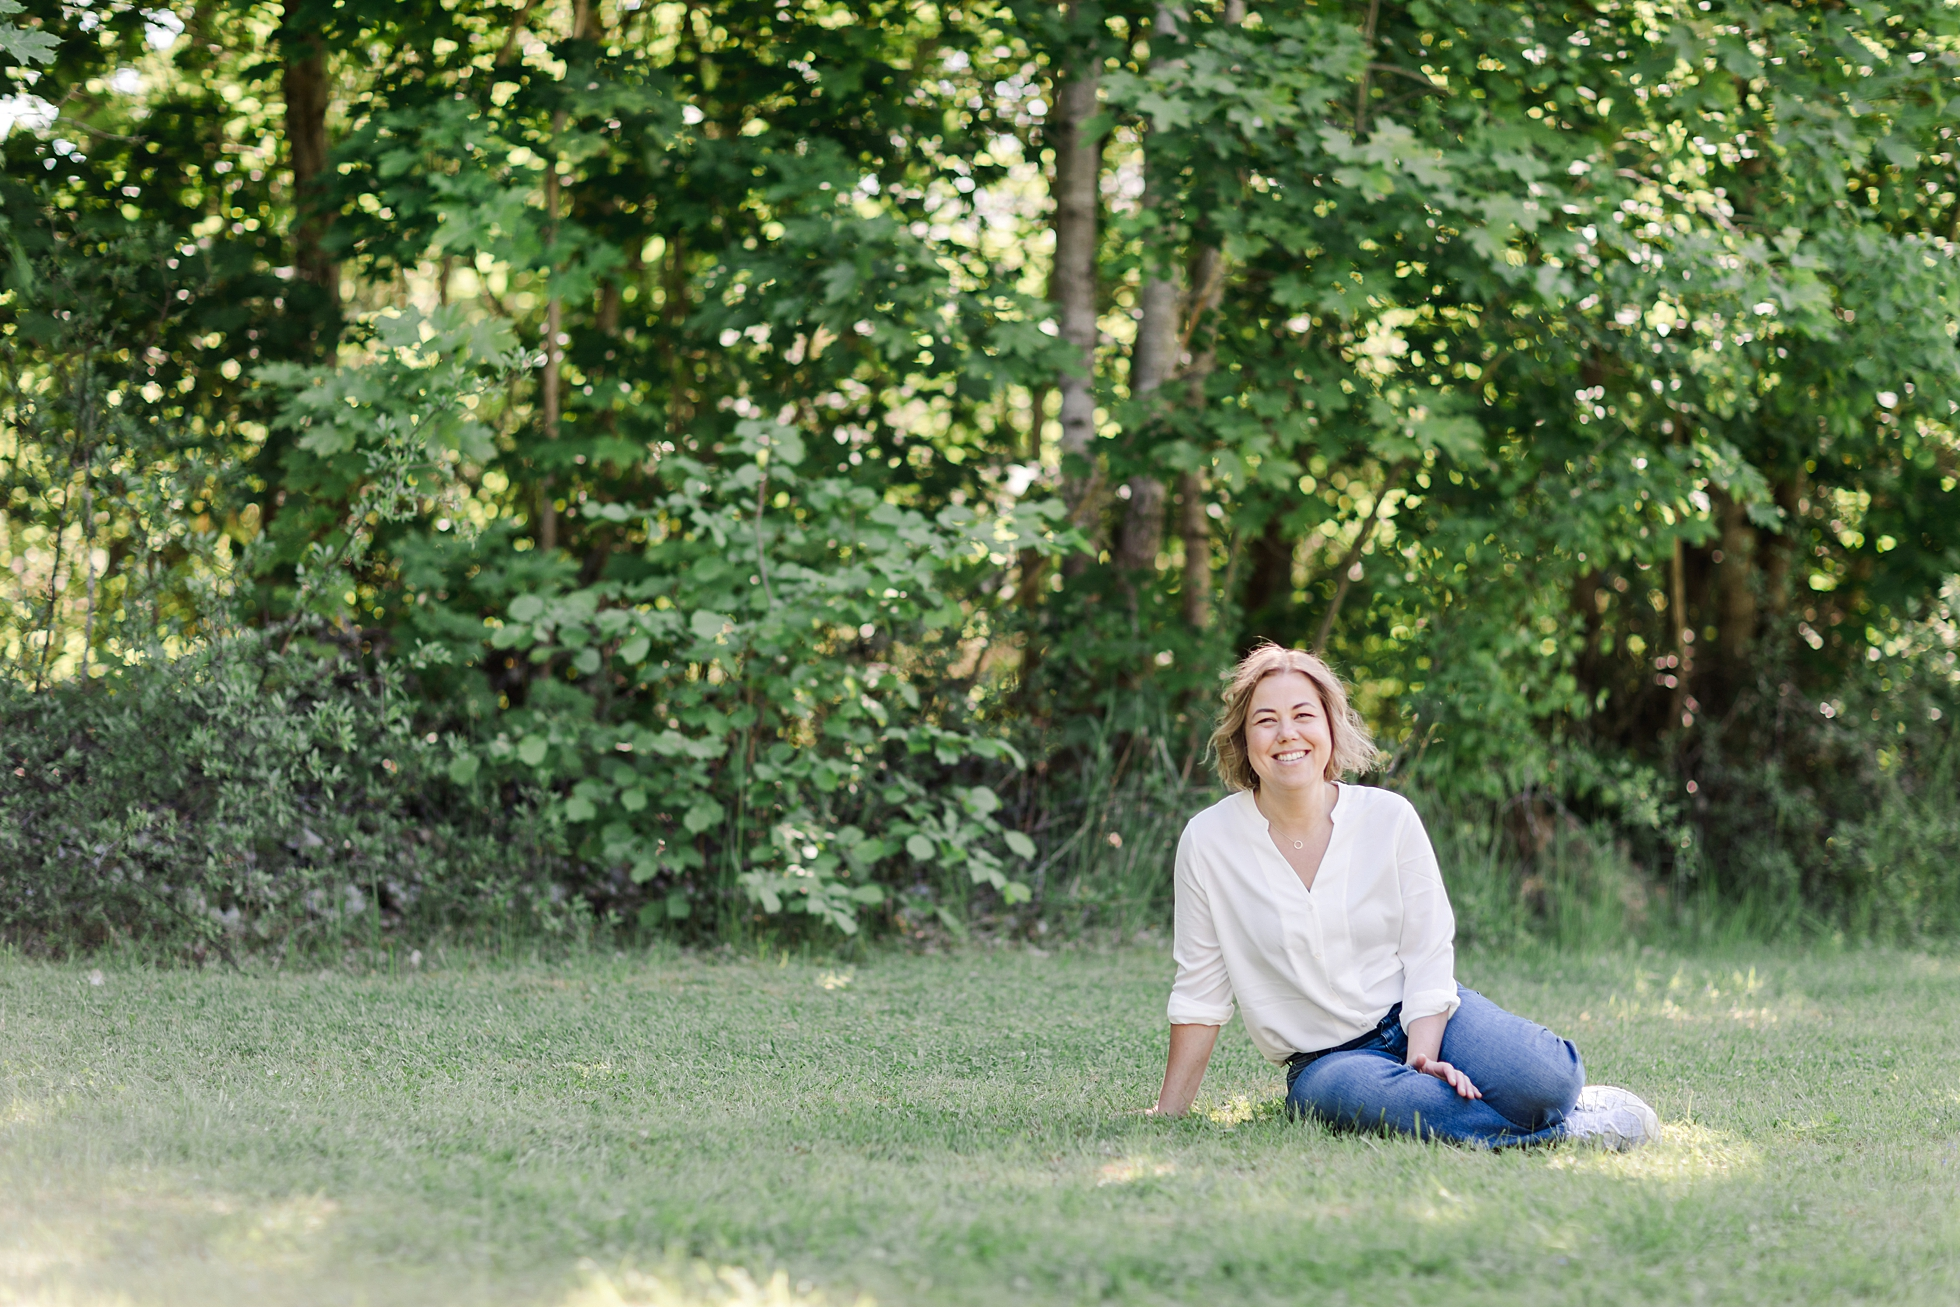 Health & wellbeing coach, Cecilia, from Urban Paleo relaxing outdoors